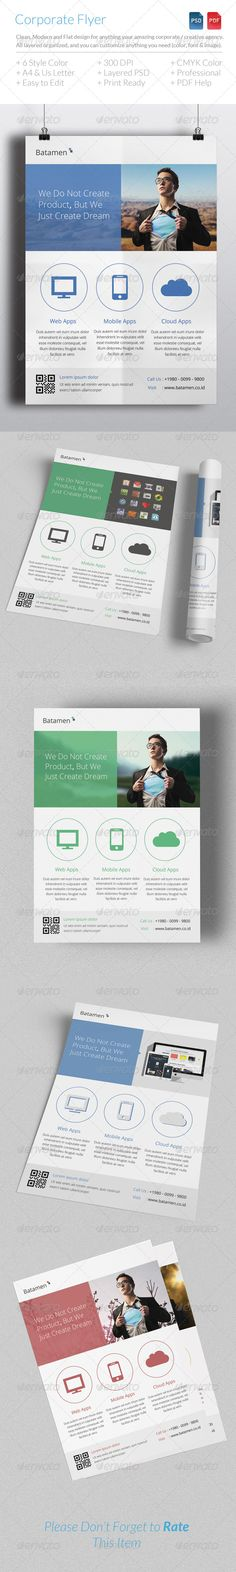 """Corporate Flyer Template Clean, modern, elegant and flat design style for anything corporate or creative agency. All layers can be changed, you can replace all the information on the flyer in easy way with just a few clicks.  Features:  › CMYK › 300 DPI › A4 & Letter With Bleeds › Print Ready › Modern Design › Clean › Easy To Use › Free Font Use  Print Dimension :  vertical A4 – 8.27"""" x 11.69"""" (210mm x 297mm) + 3mm bleeds vertical US Letter – 8.5"""" x 11"""" (215.9mm x 279.4mm) + 0.25"""" bleeds"""